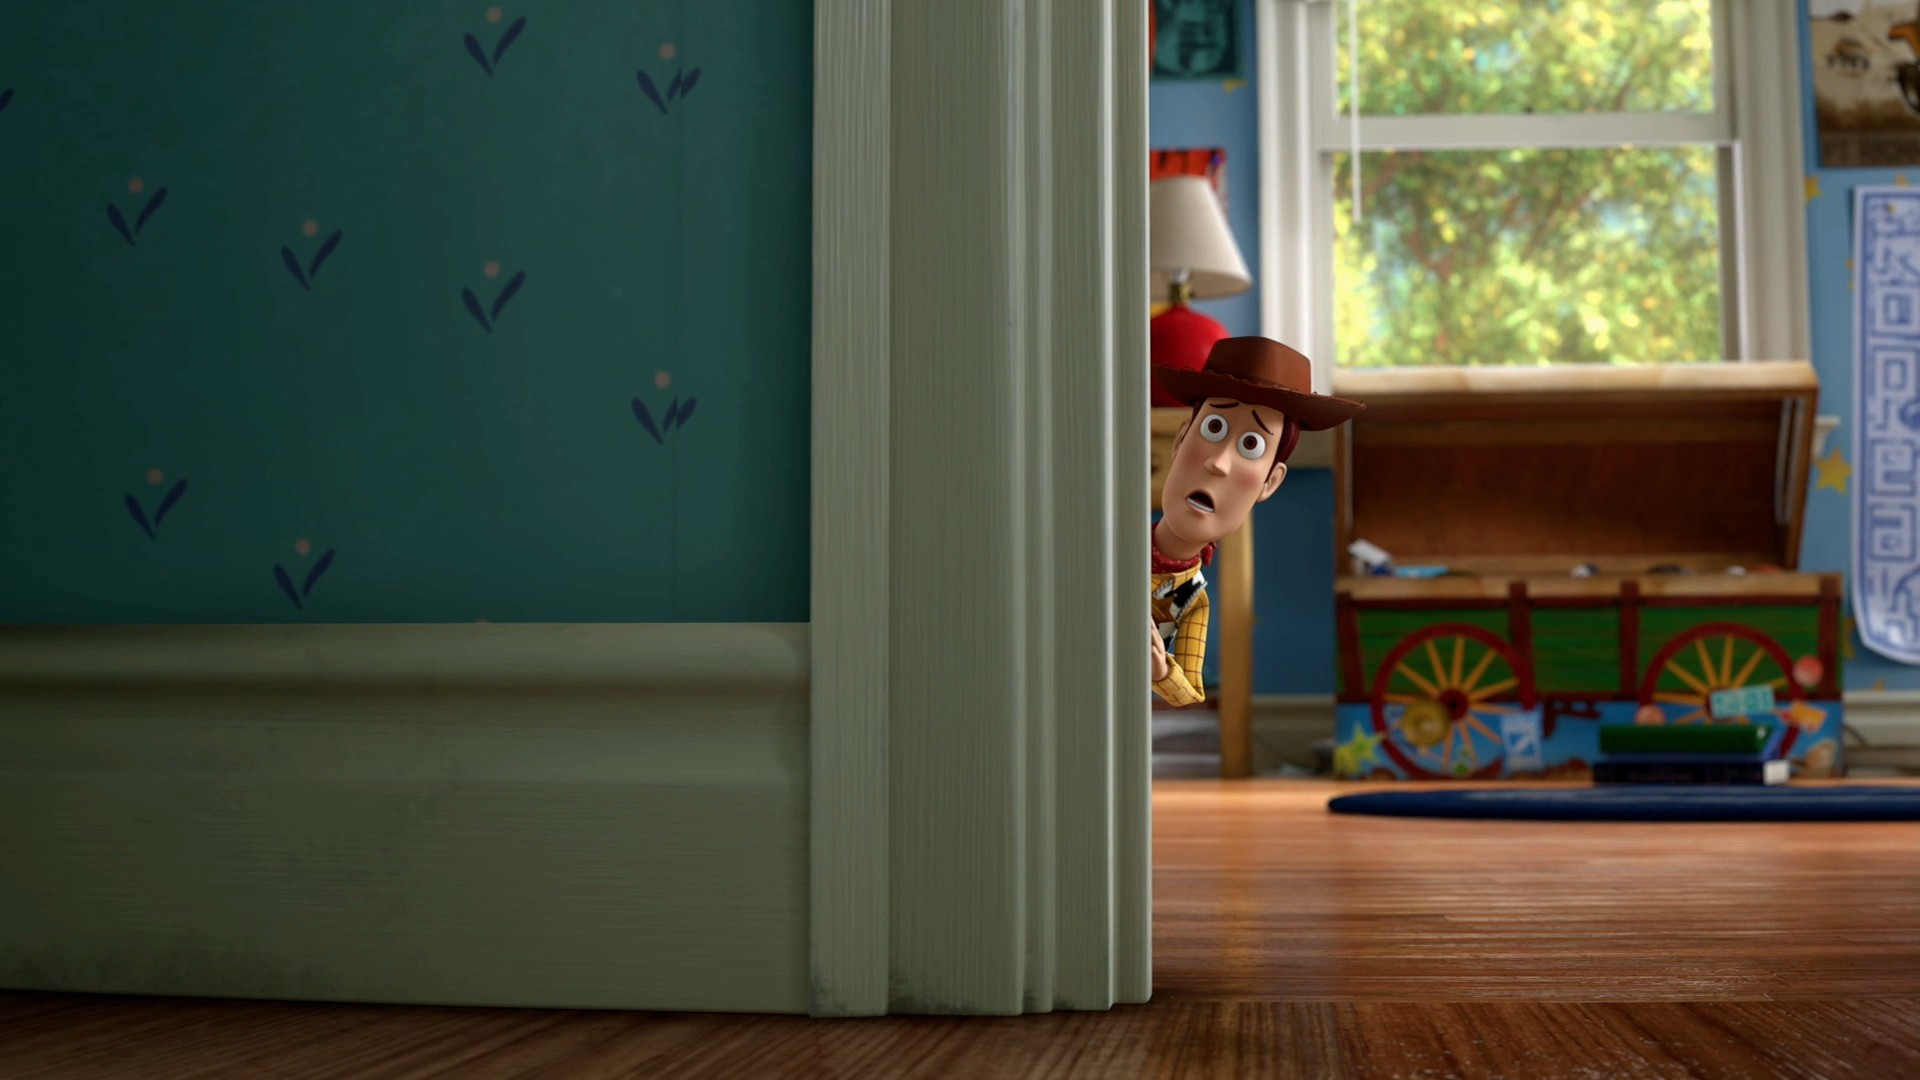 1920x1080 Movie - Toy Story Woody (Toy Story) Wallpaper